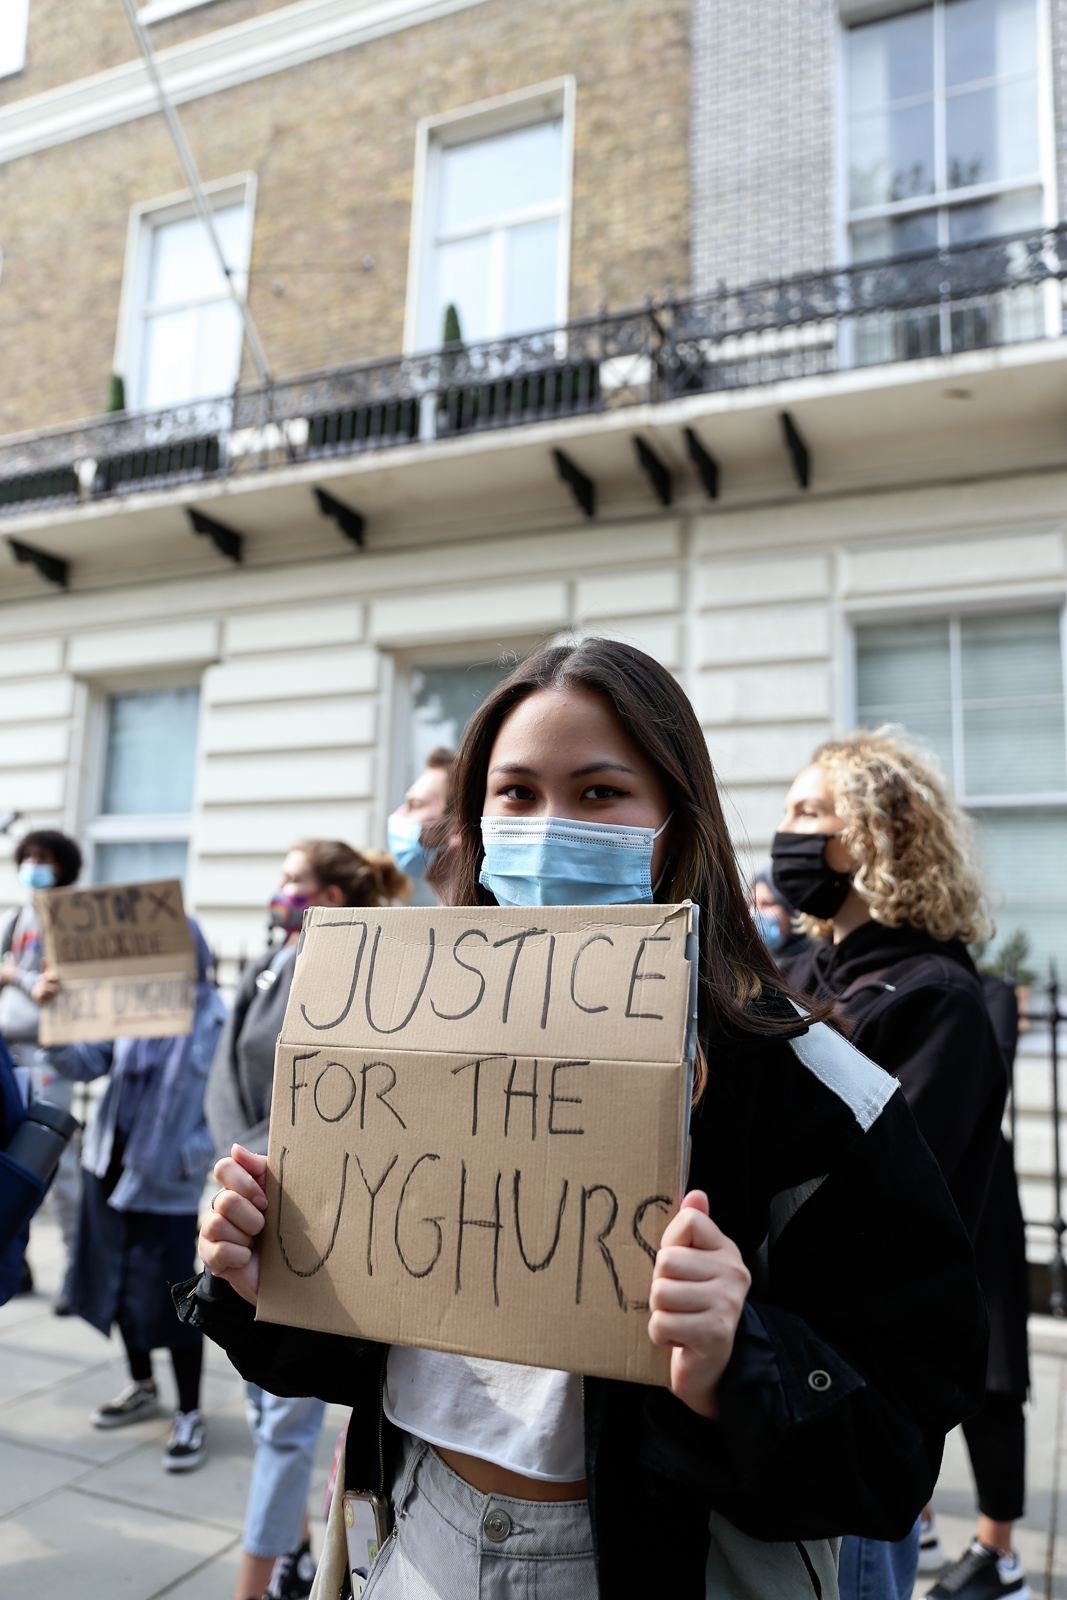 Vice - Chinese Embassy Uyghur Protest - Photos Bex Wade-21.jpg